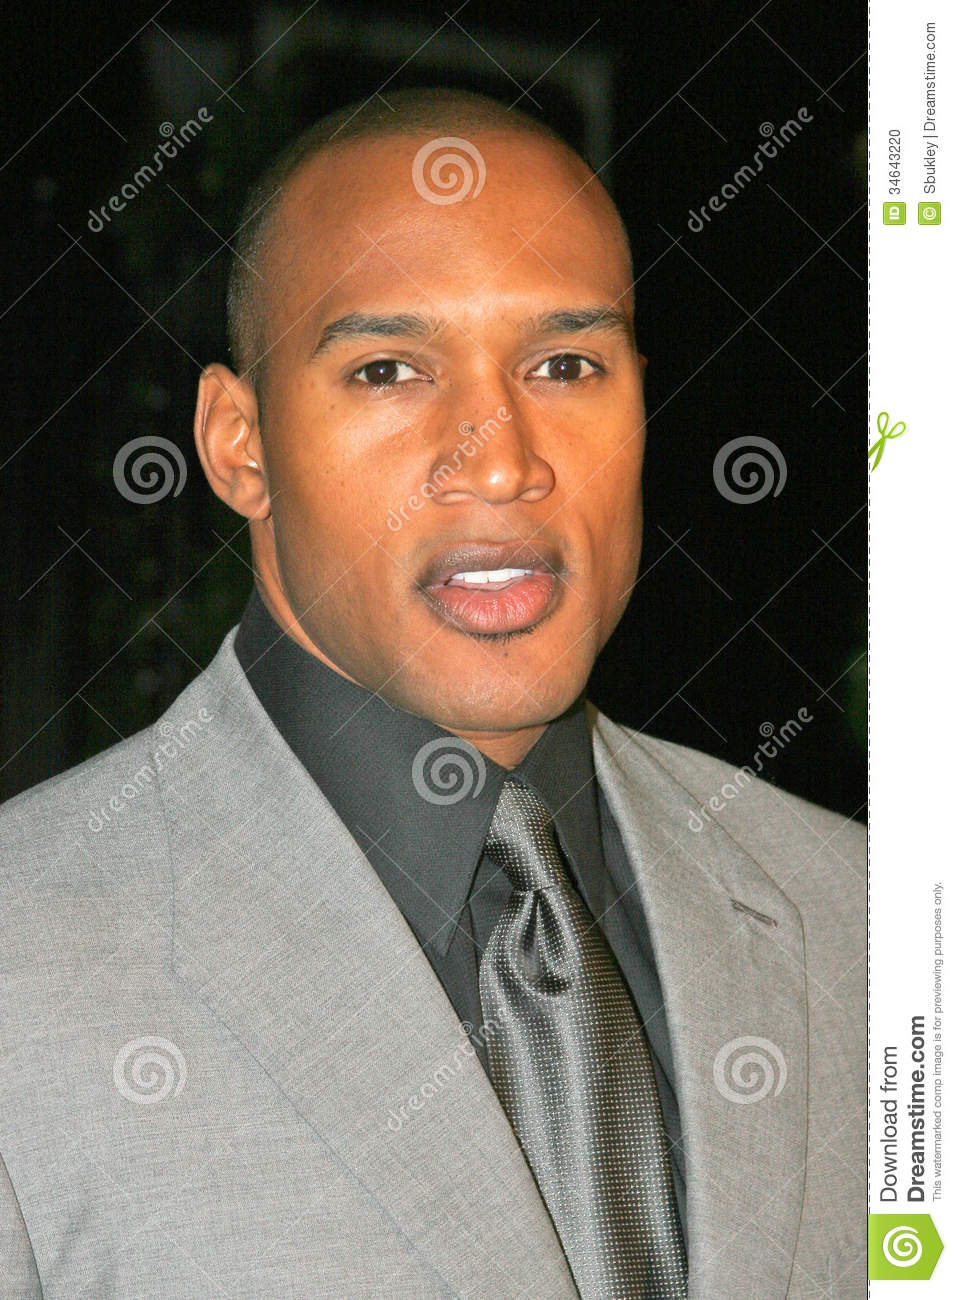 henry simmons alzheimer scotlandhenry simmons height, henry simmons bones, henry simmons instagram, henry simmons height and weight, henry simmons muscle, henry simmons twitter, henry simmons, henry simmons wife, henry simmons agents of shield, henry simmons wiki, henry simmons boris kodjoe, henry simmons net worth, henry simmons imdb, henry simmons movies and tv shows, henry simmons twin sister, henry simmons shirtless, henry simmons alzheimer scotland, henry simmons facebook, henry simmons workout, henry simmons and sophina brown